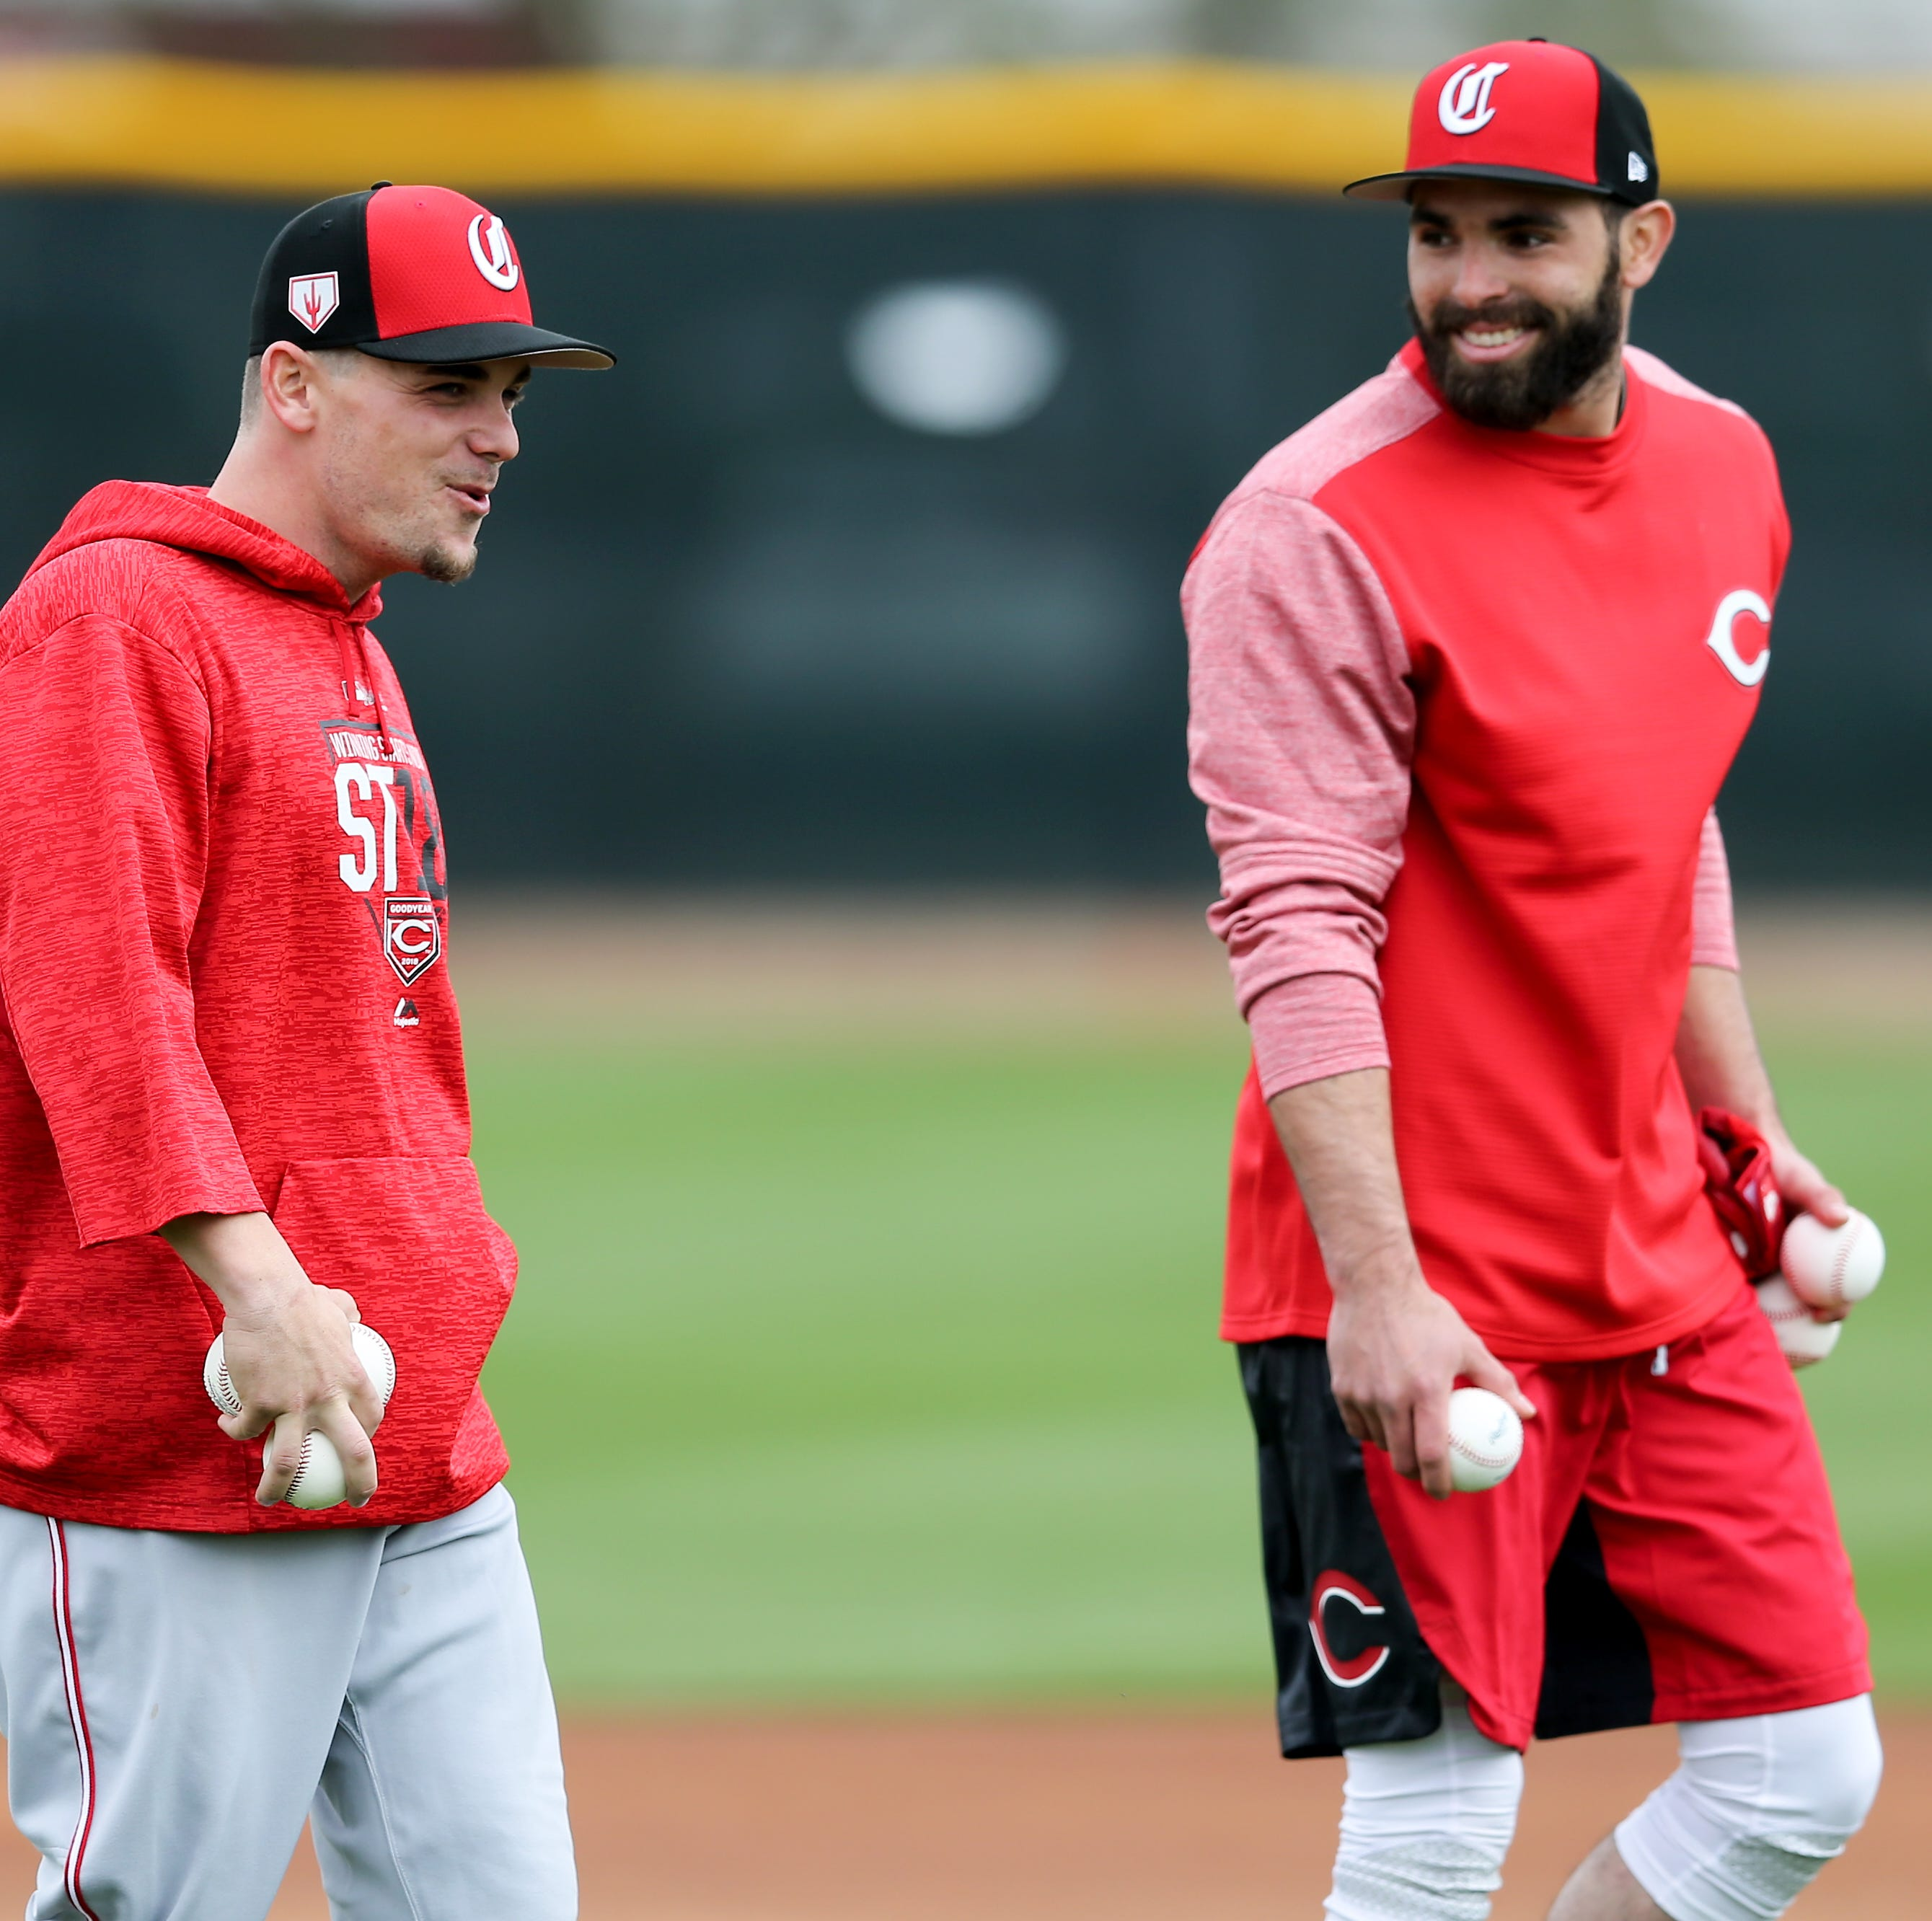 José Peraza drives in 3 runs during Cincinnati Reds' 14-6 spring loss to Kansas City Royals